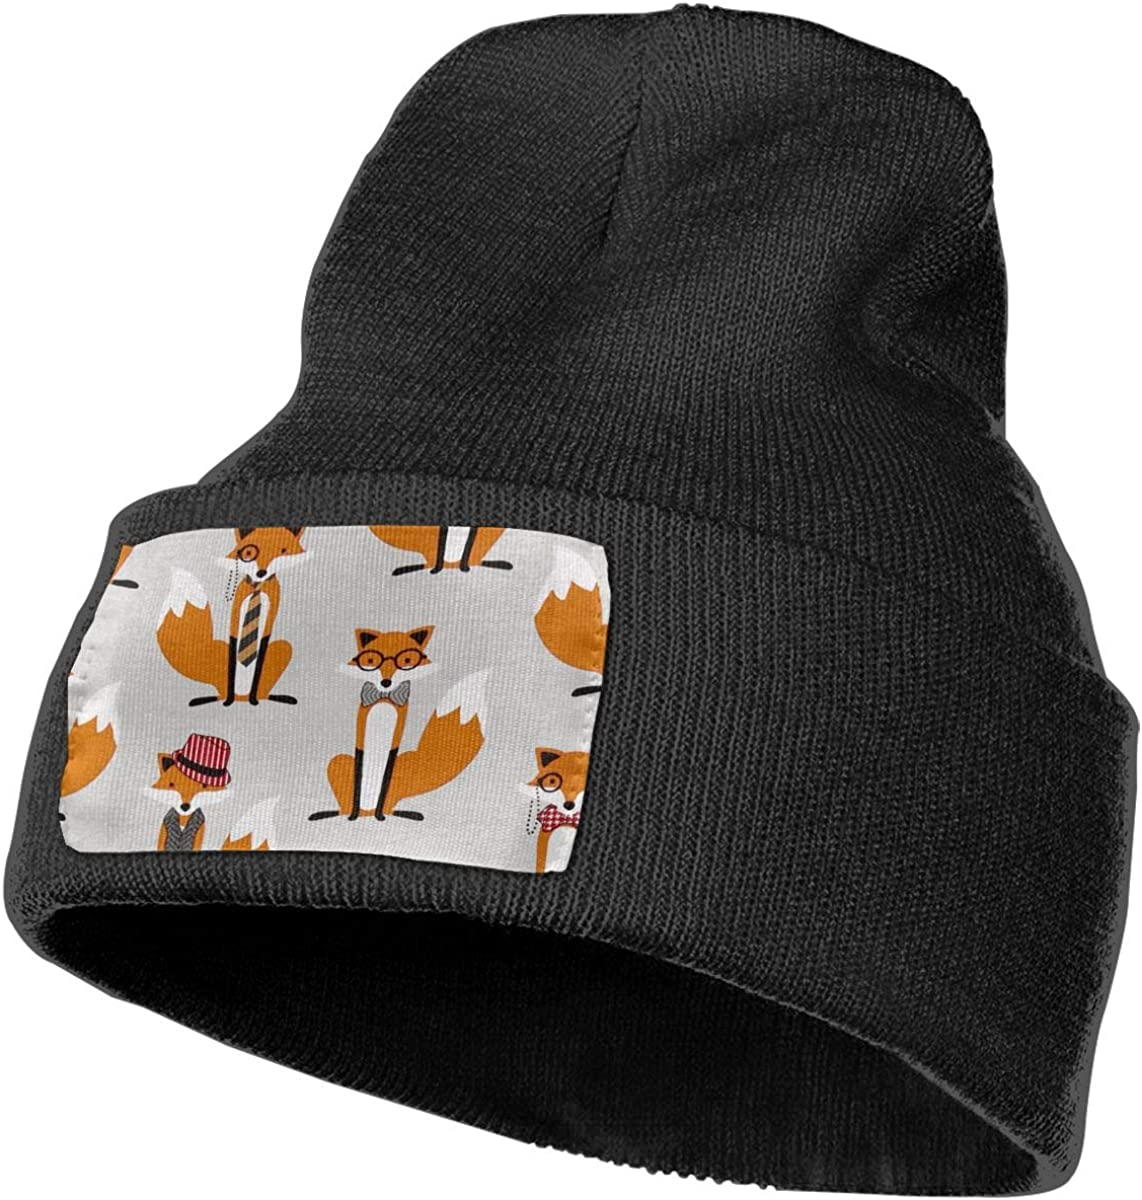 ONHIM Houndstooth Foxes Men /& Women Winter Warm Kintted Beanie Hat Skull Wrinkled Hats